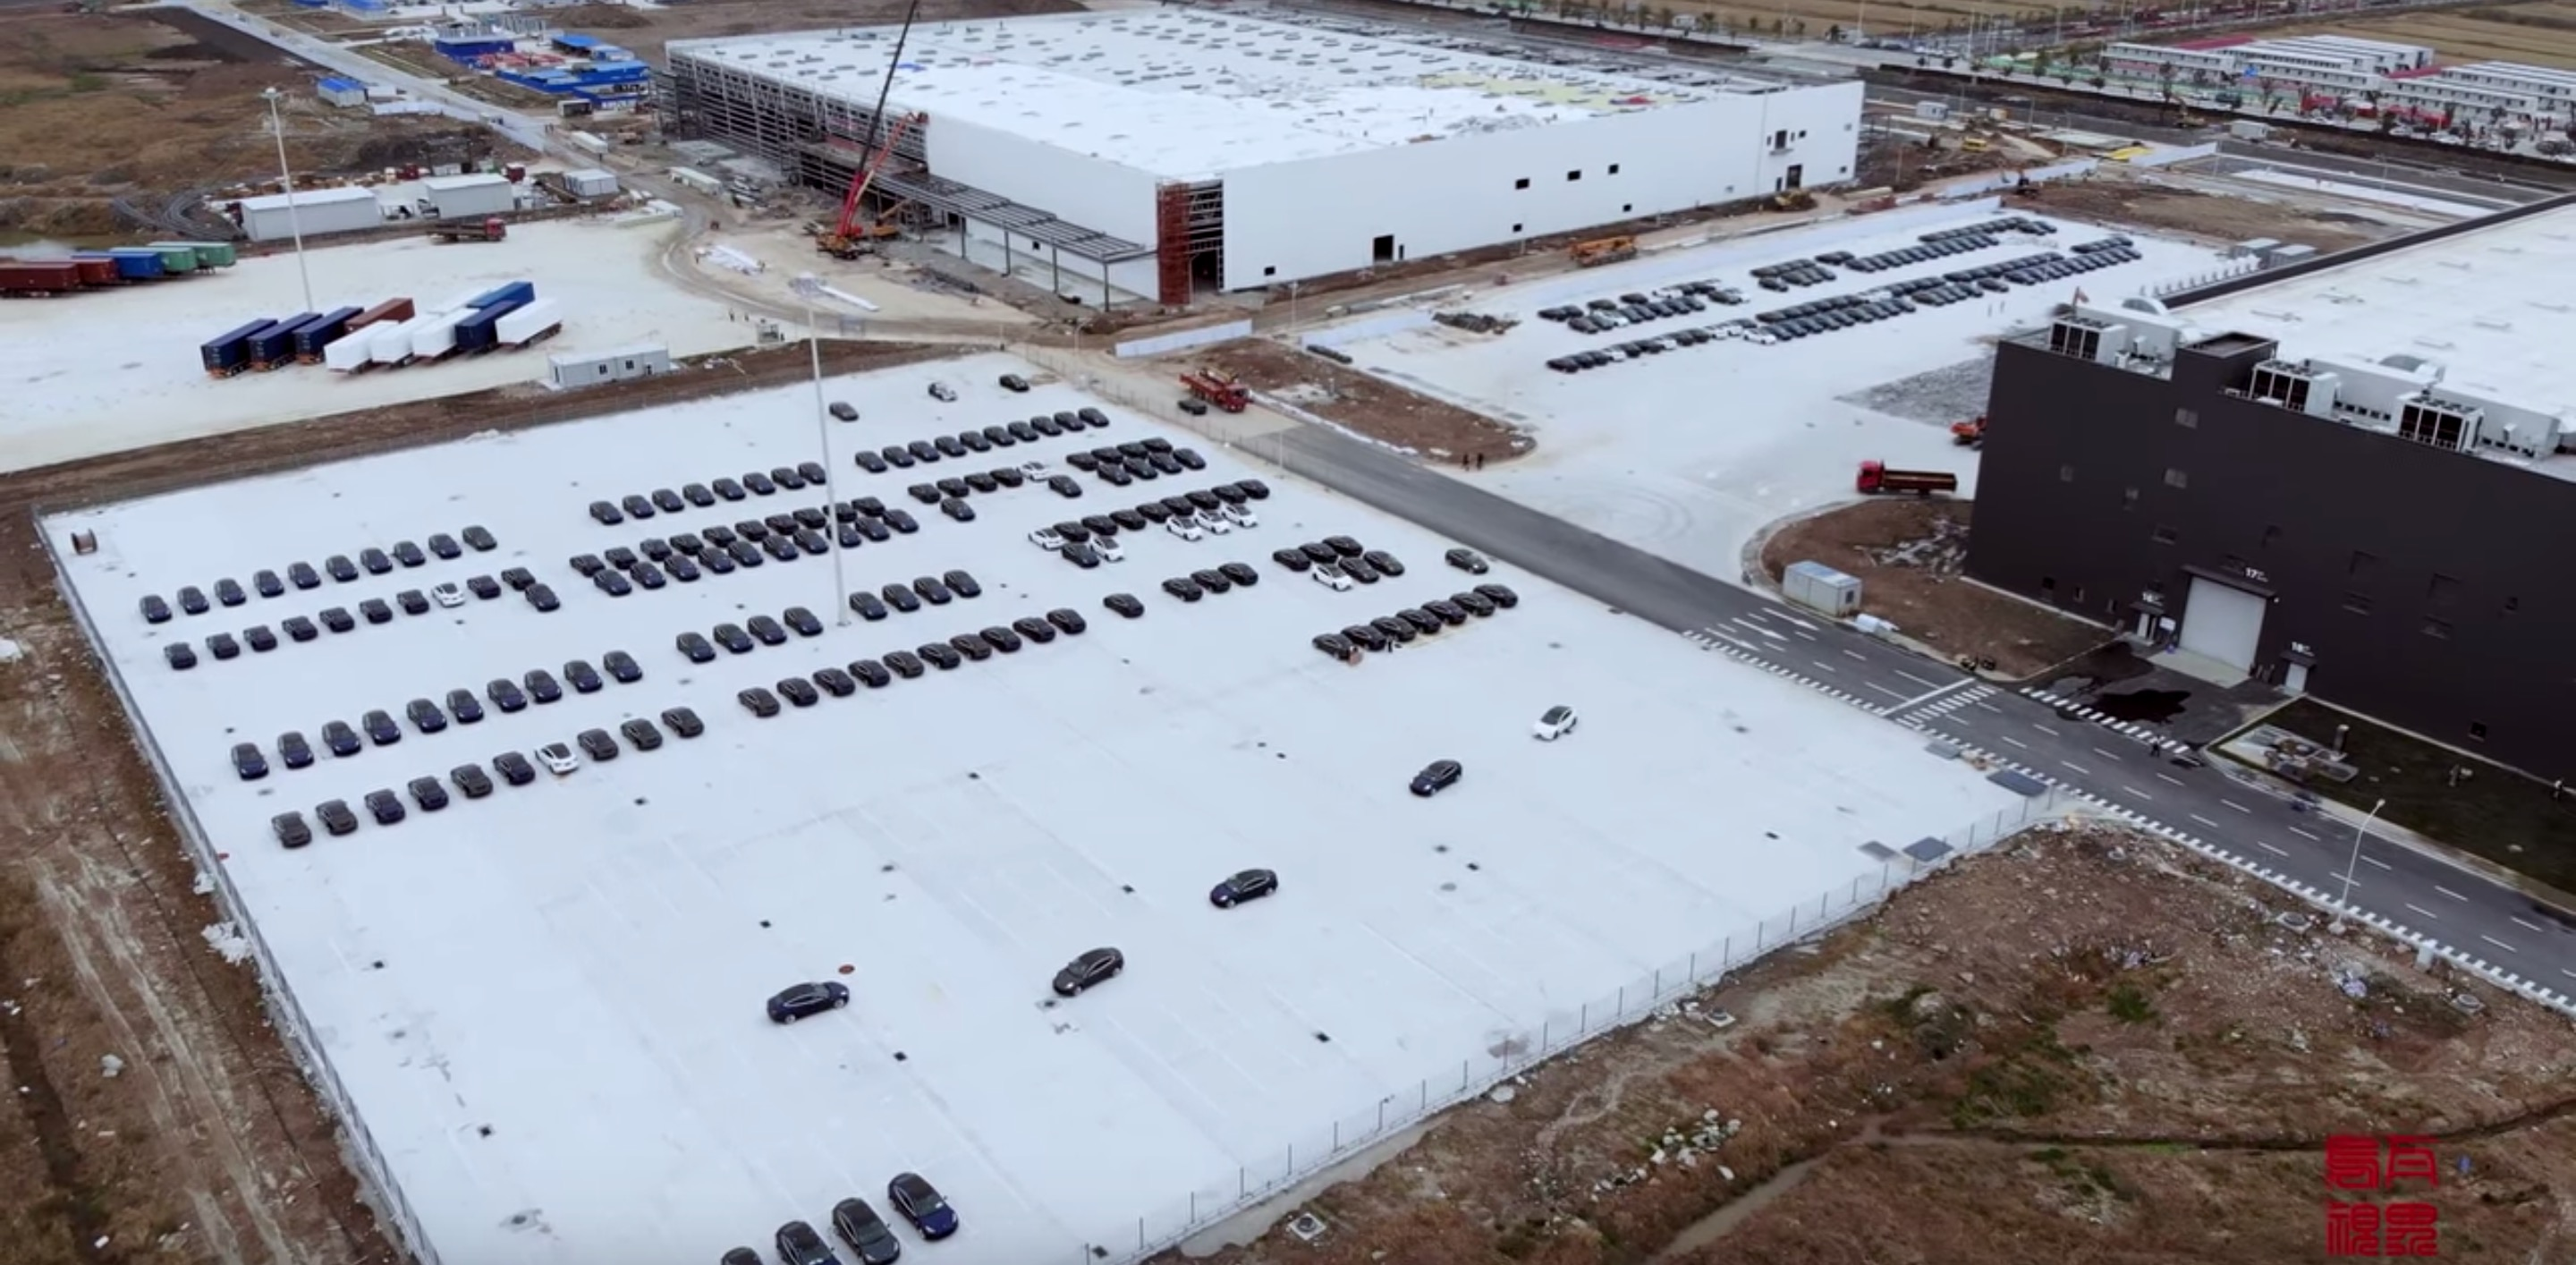 Tesla Gigafactory 3 starts producing a lot of Model 3 vehicles, but still no sales approval - Electrek